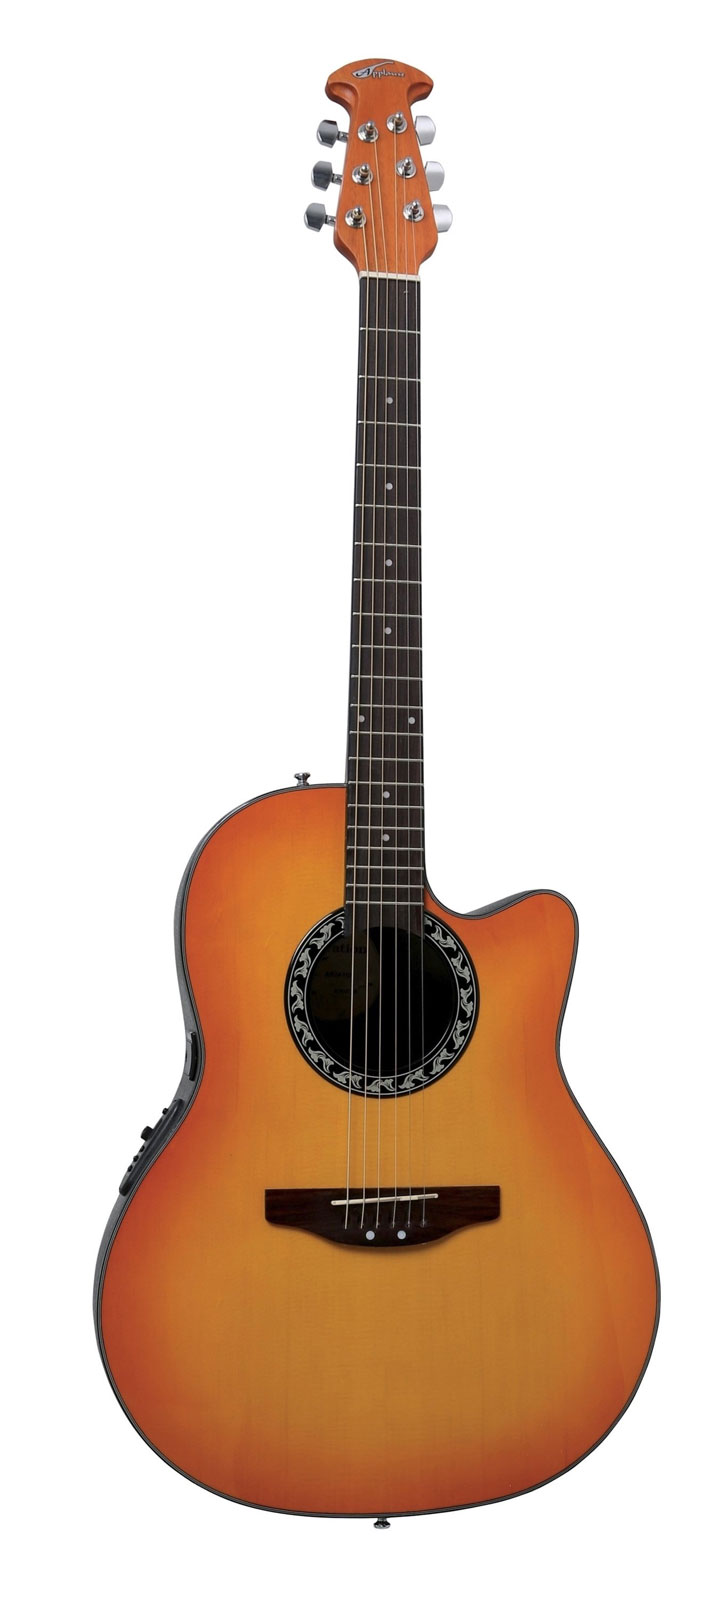 OVATION APPLAUSE BALLADEER AB24HB HONEY BURST